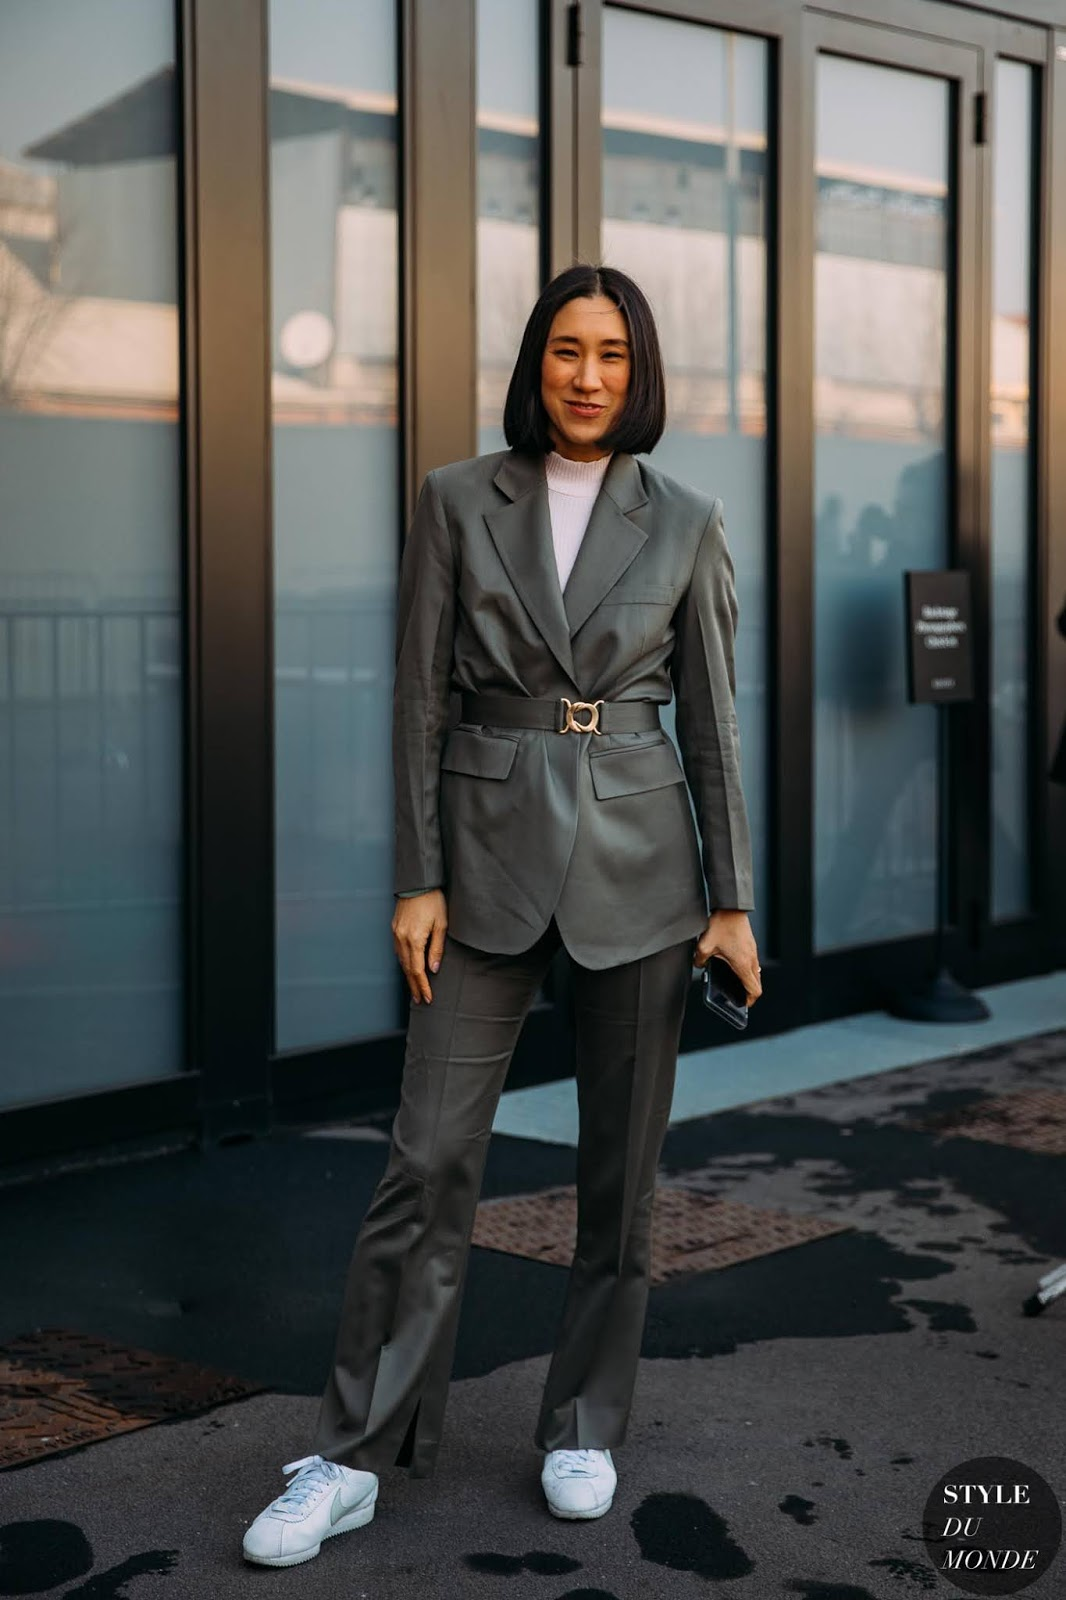 A Belted Suit Is Perfect For Fall Workweeks